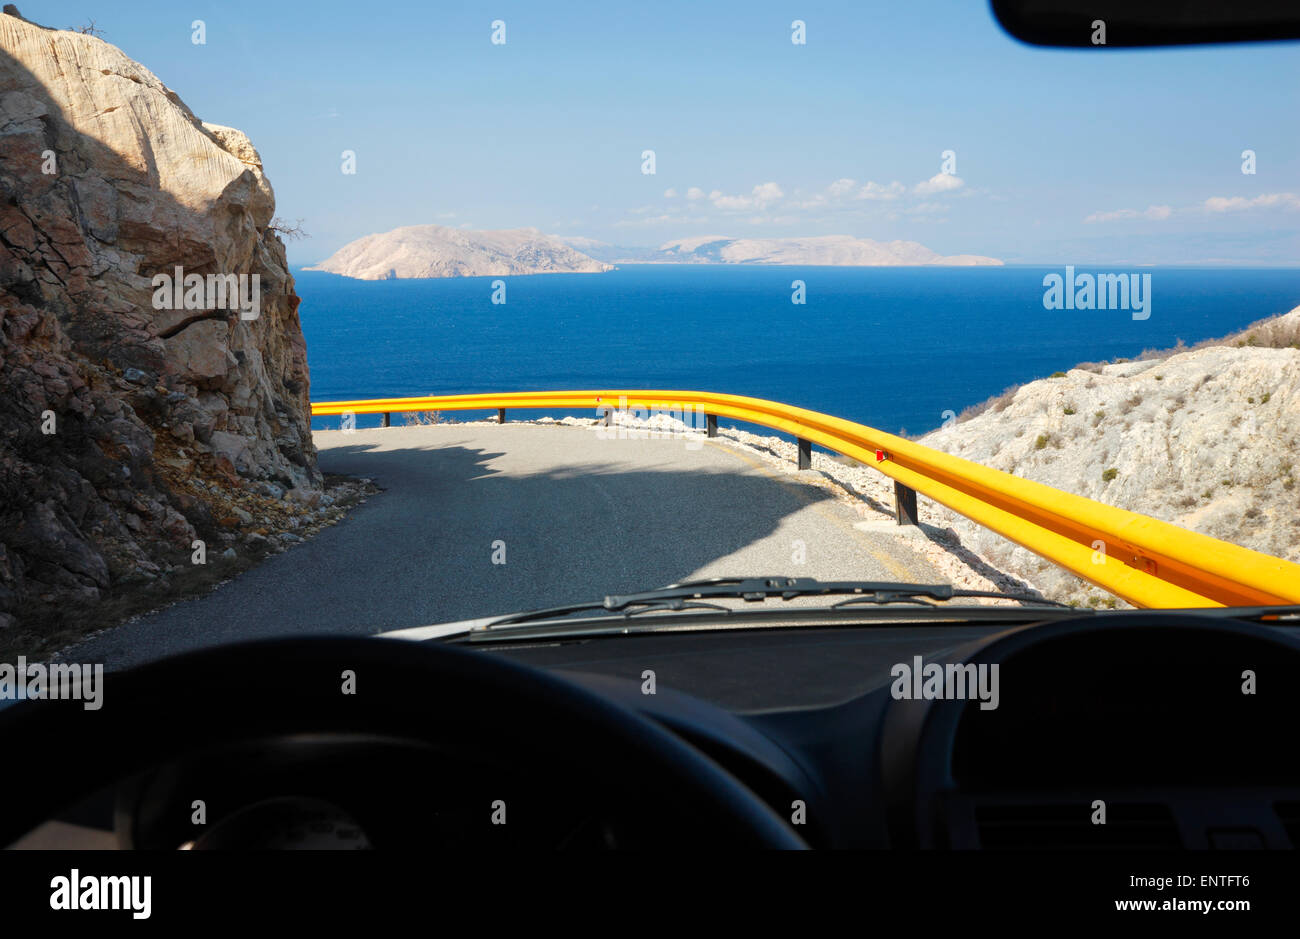 Steering wheel and dashboard of a car on road in Croatia - Stock Image